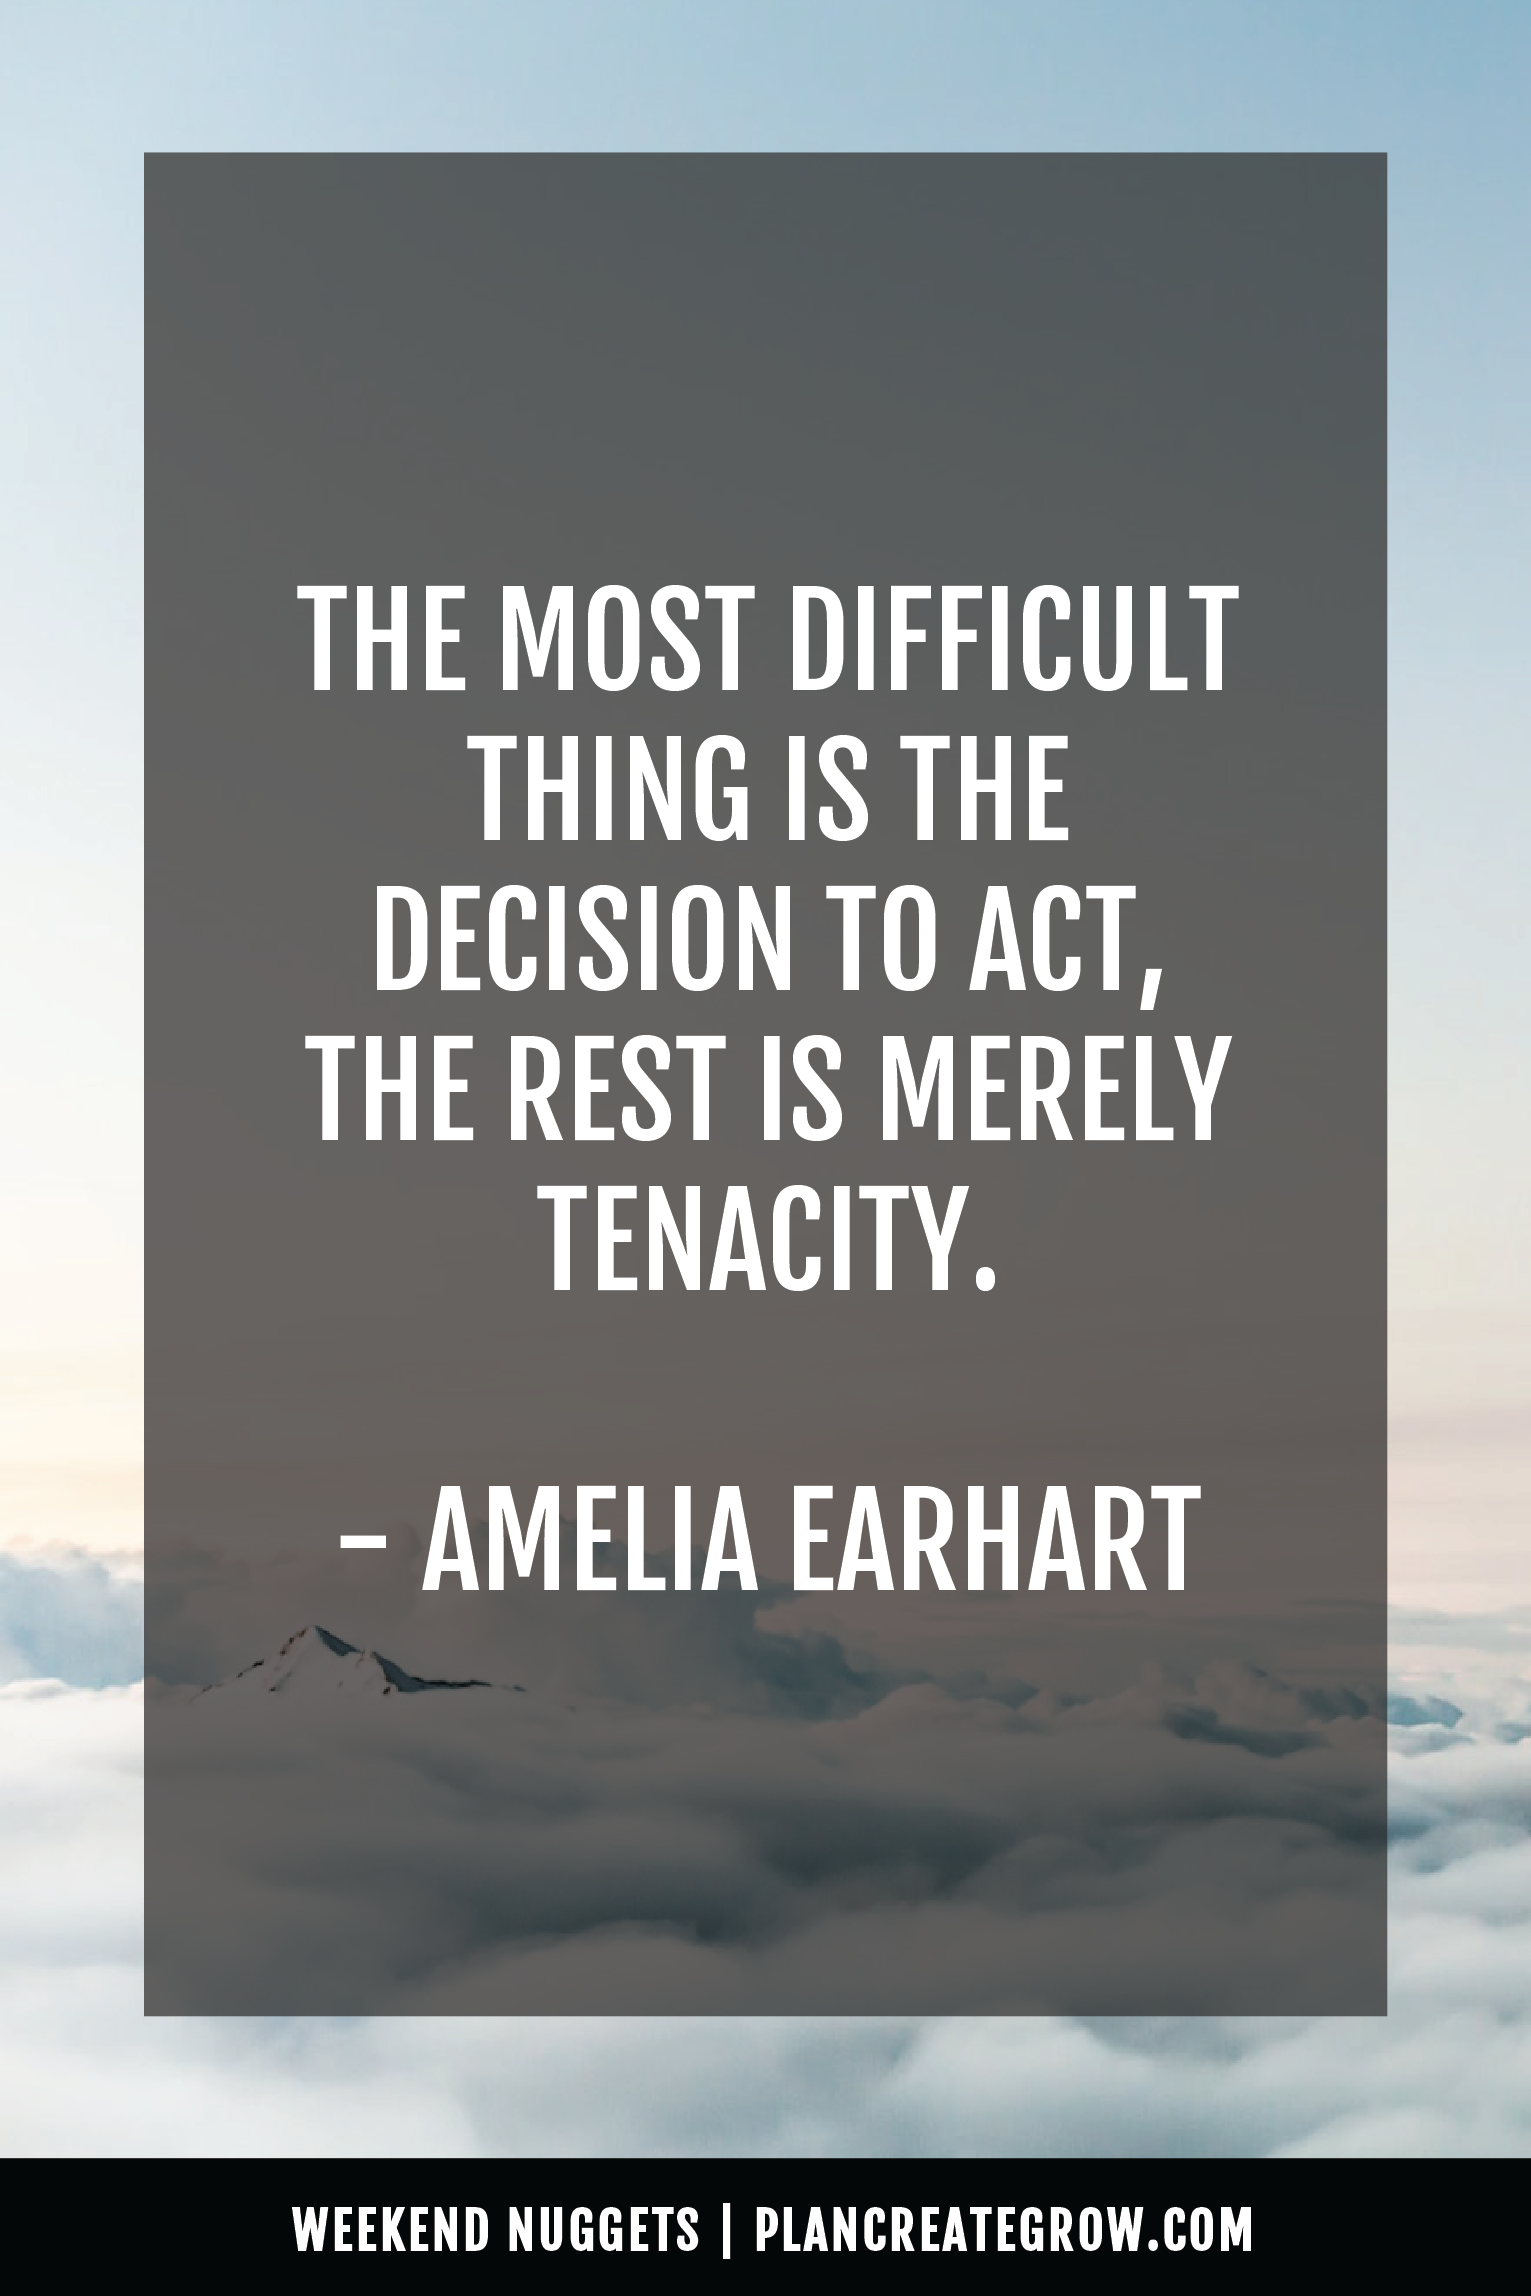 """""""The most difficult thing is the decision to act, the rest is merely tenacity."""" - Amelia Earhart  This image forms part of a series called Weekend Nuggets - a collection of quotes and ideas curated to delight and inspire - shared each weekend. For more, visit plancreategrow.com/weekend-nuggets."""